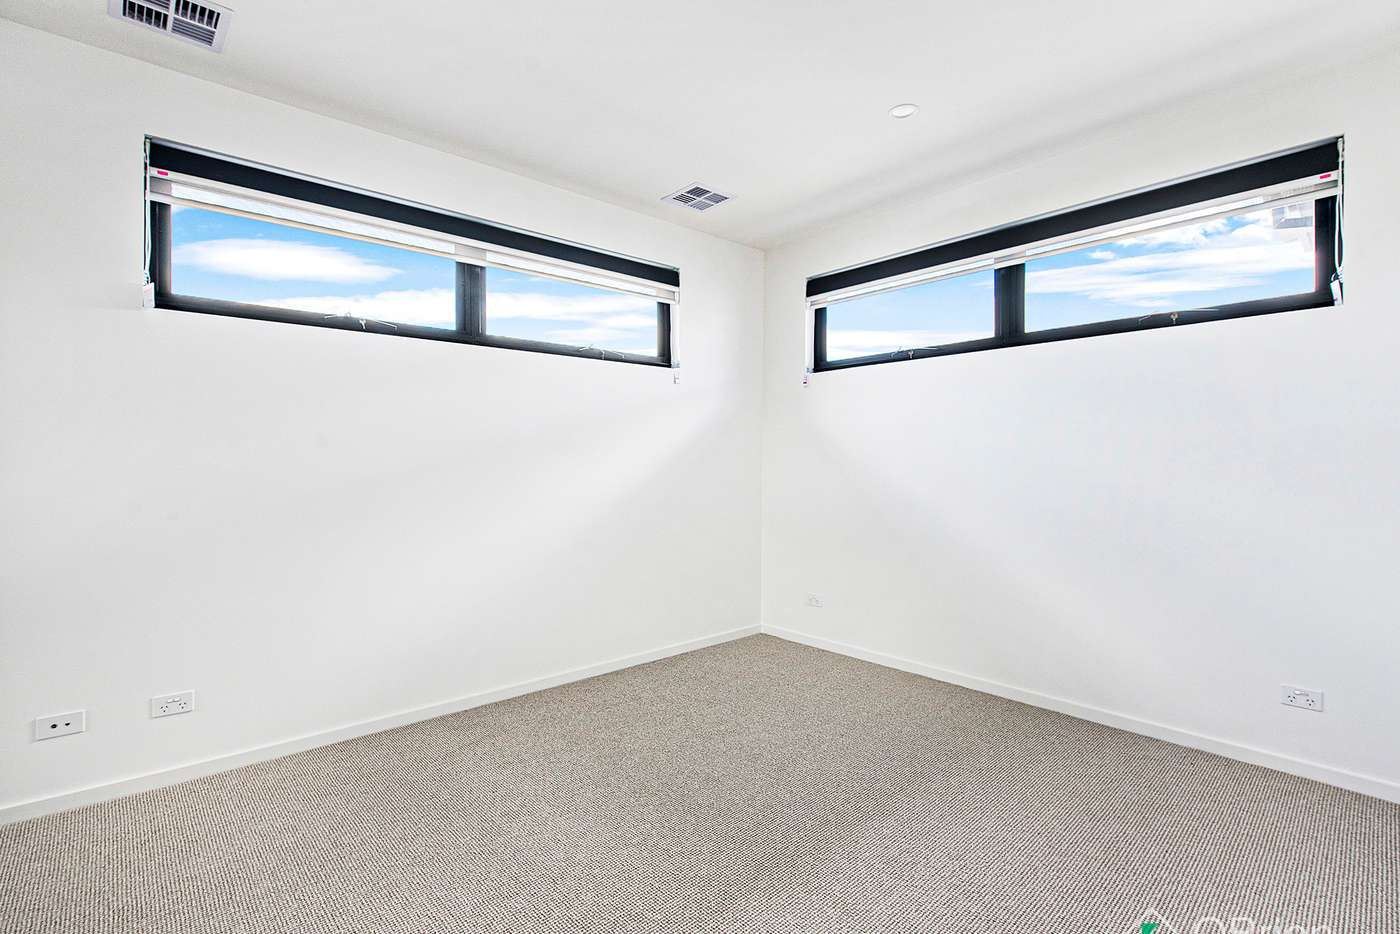 Sixth view of Homely house listing, 17B England Street, Bentleigh East VIC 3165